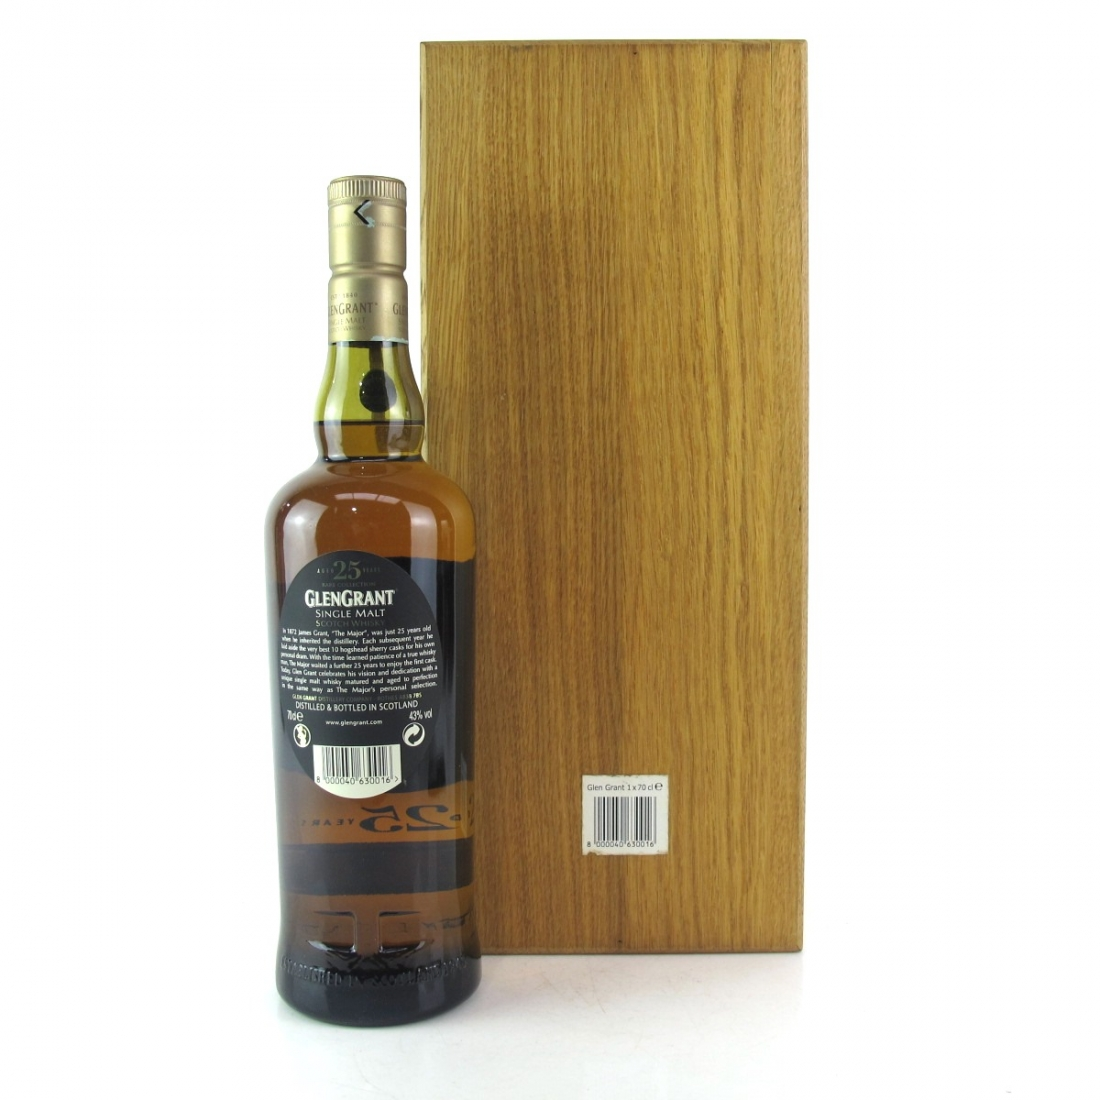 Glen Grant 25 Year Old Rare Collection